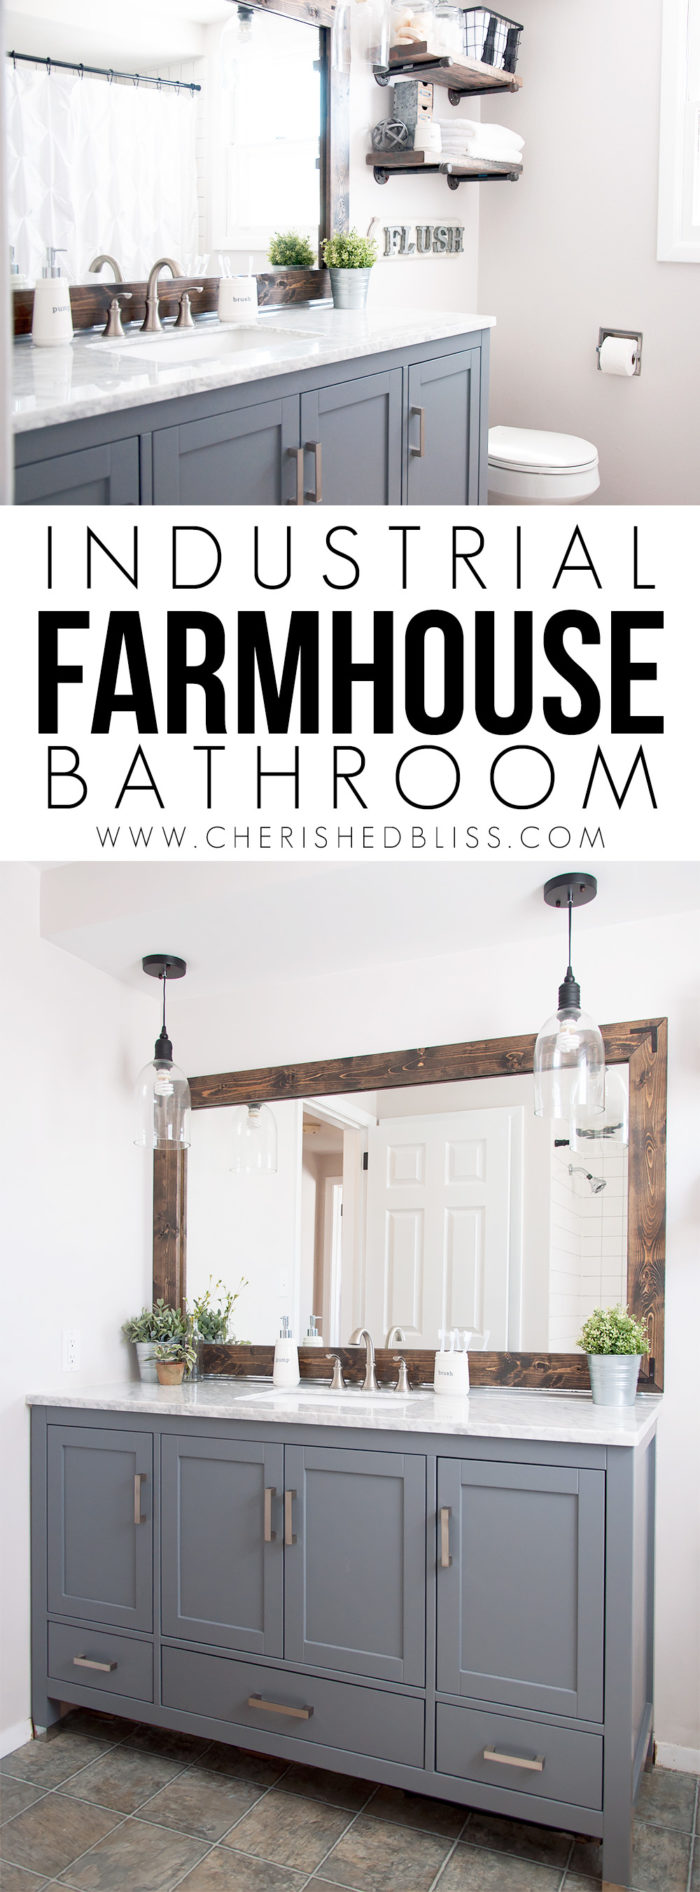 Industrial farmhouse bathroom reveal cherished bliss for Industrial farmhouse plans